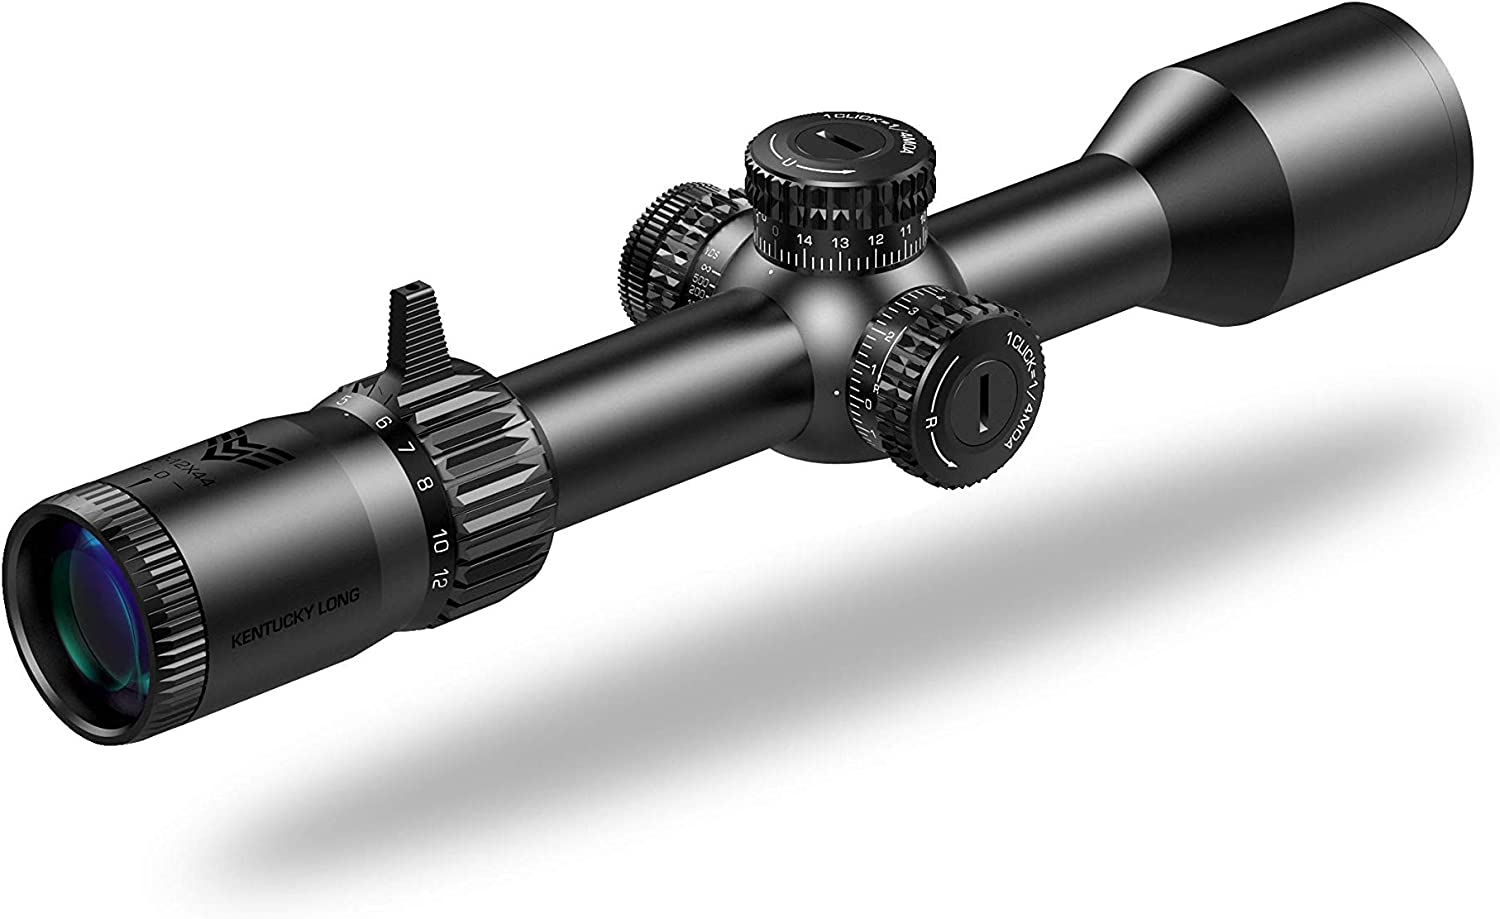 Swampfox Kentucky Tactical Variable Illuminated Scope